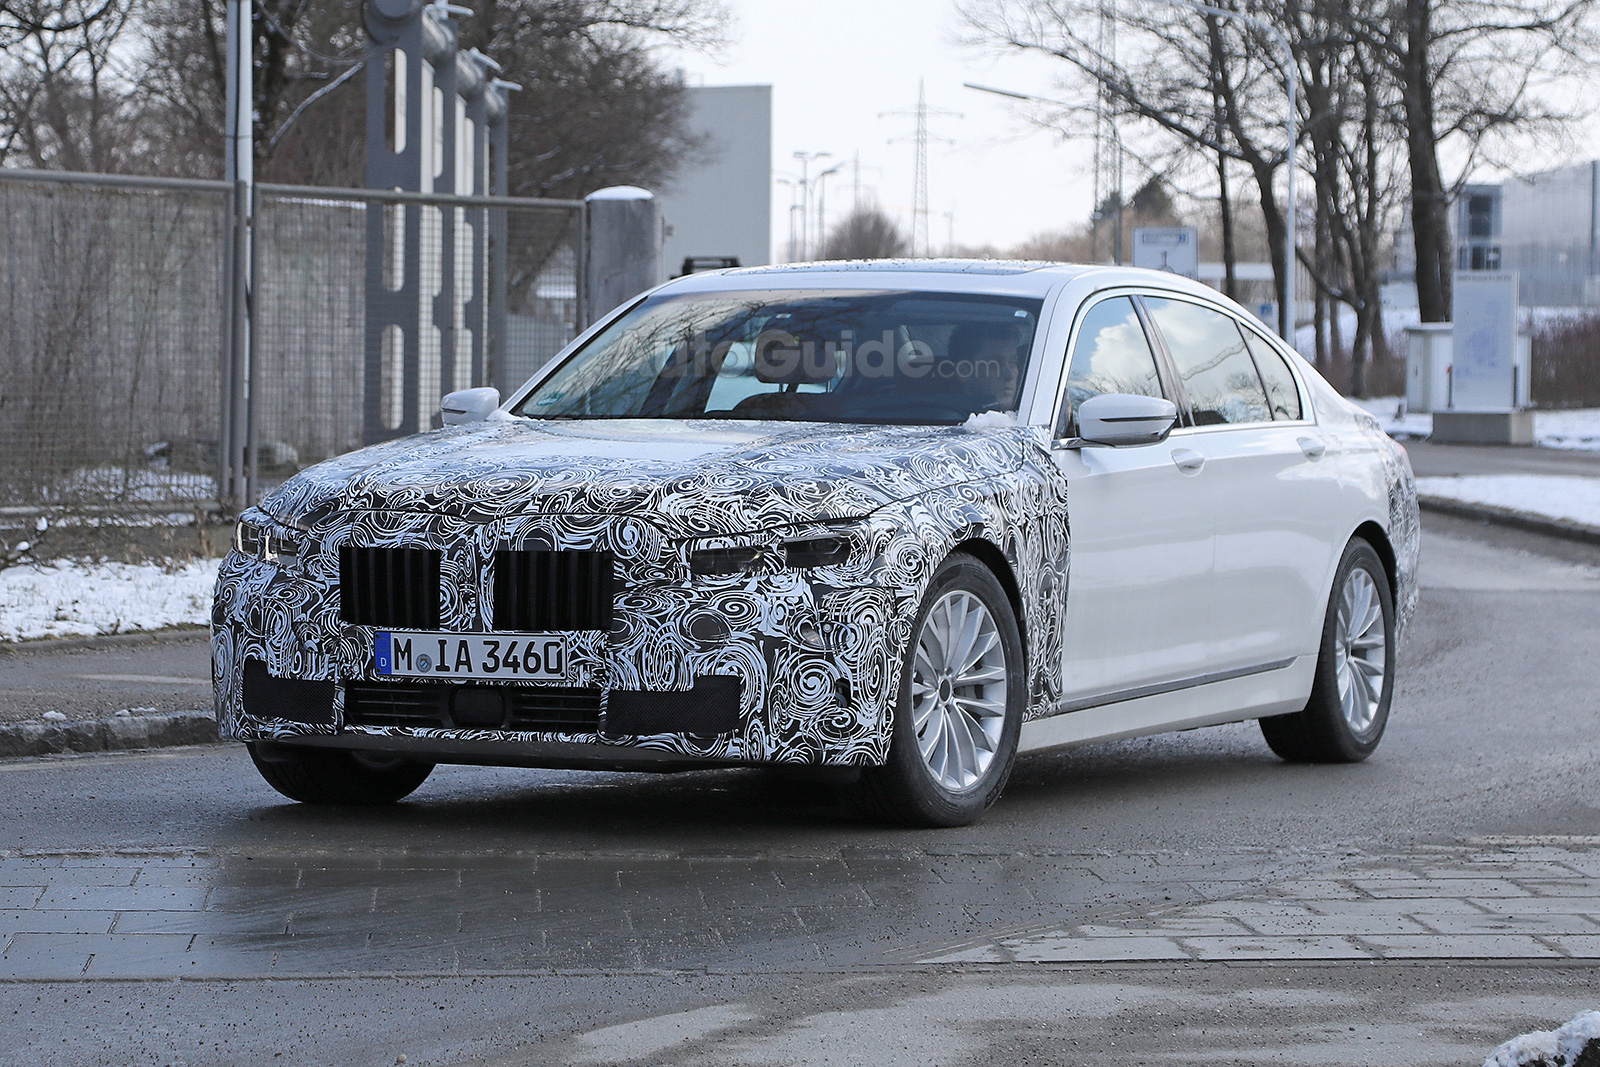 X. The BMW 7 Series ...